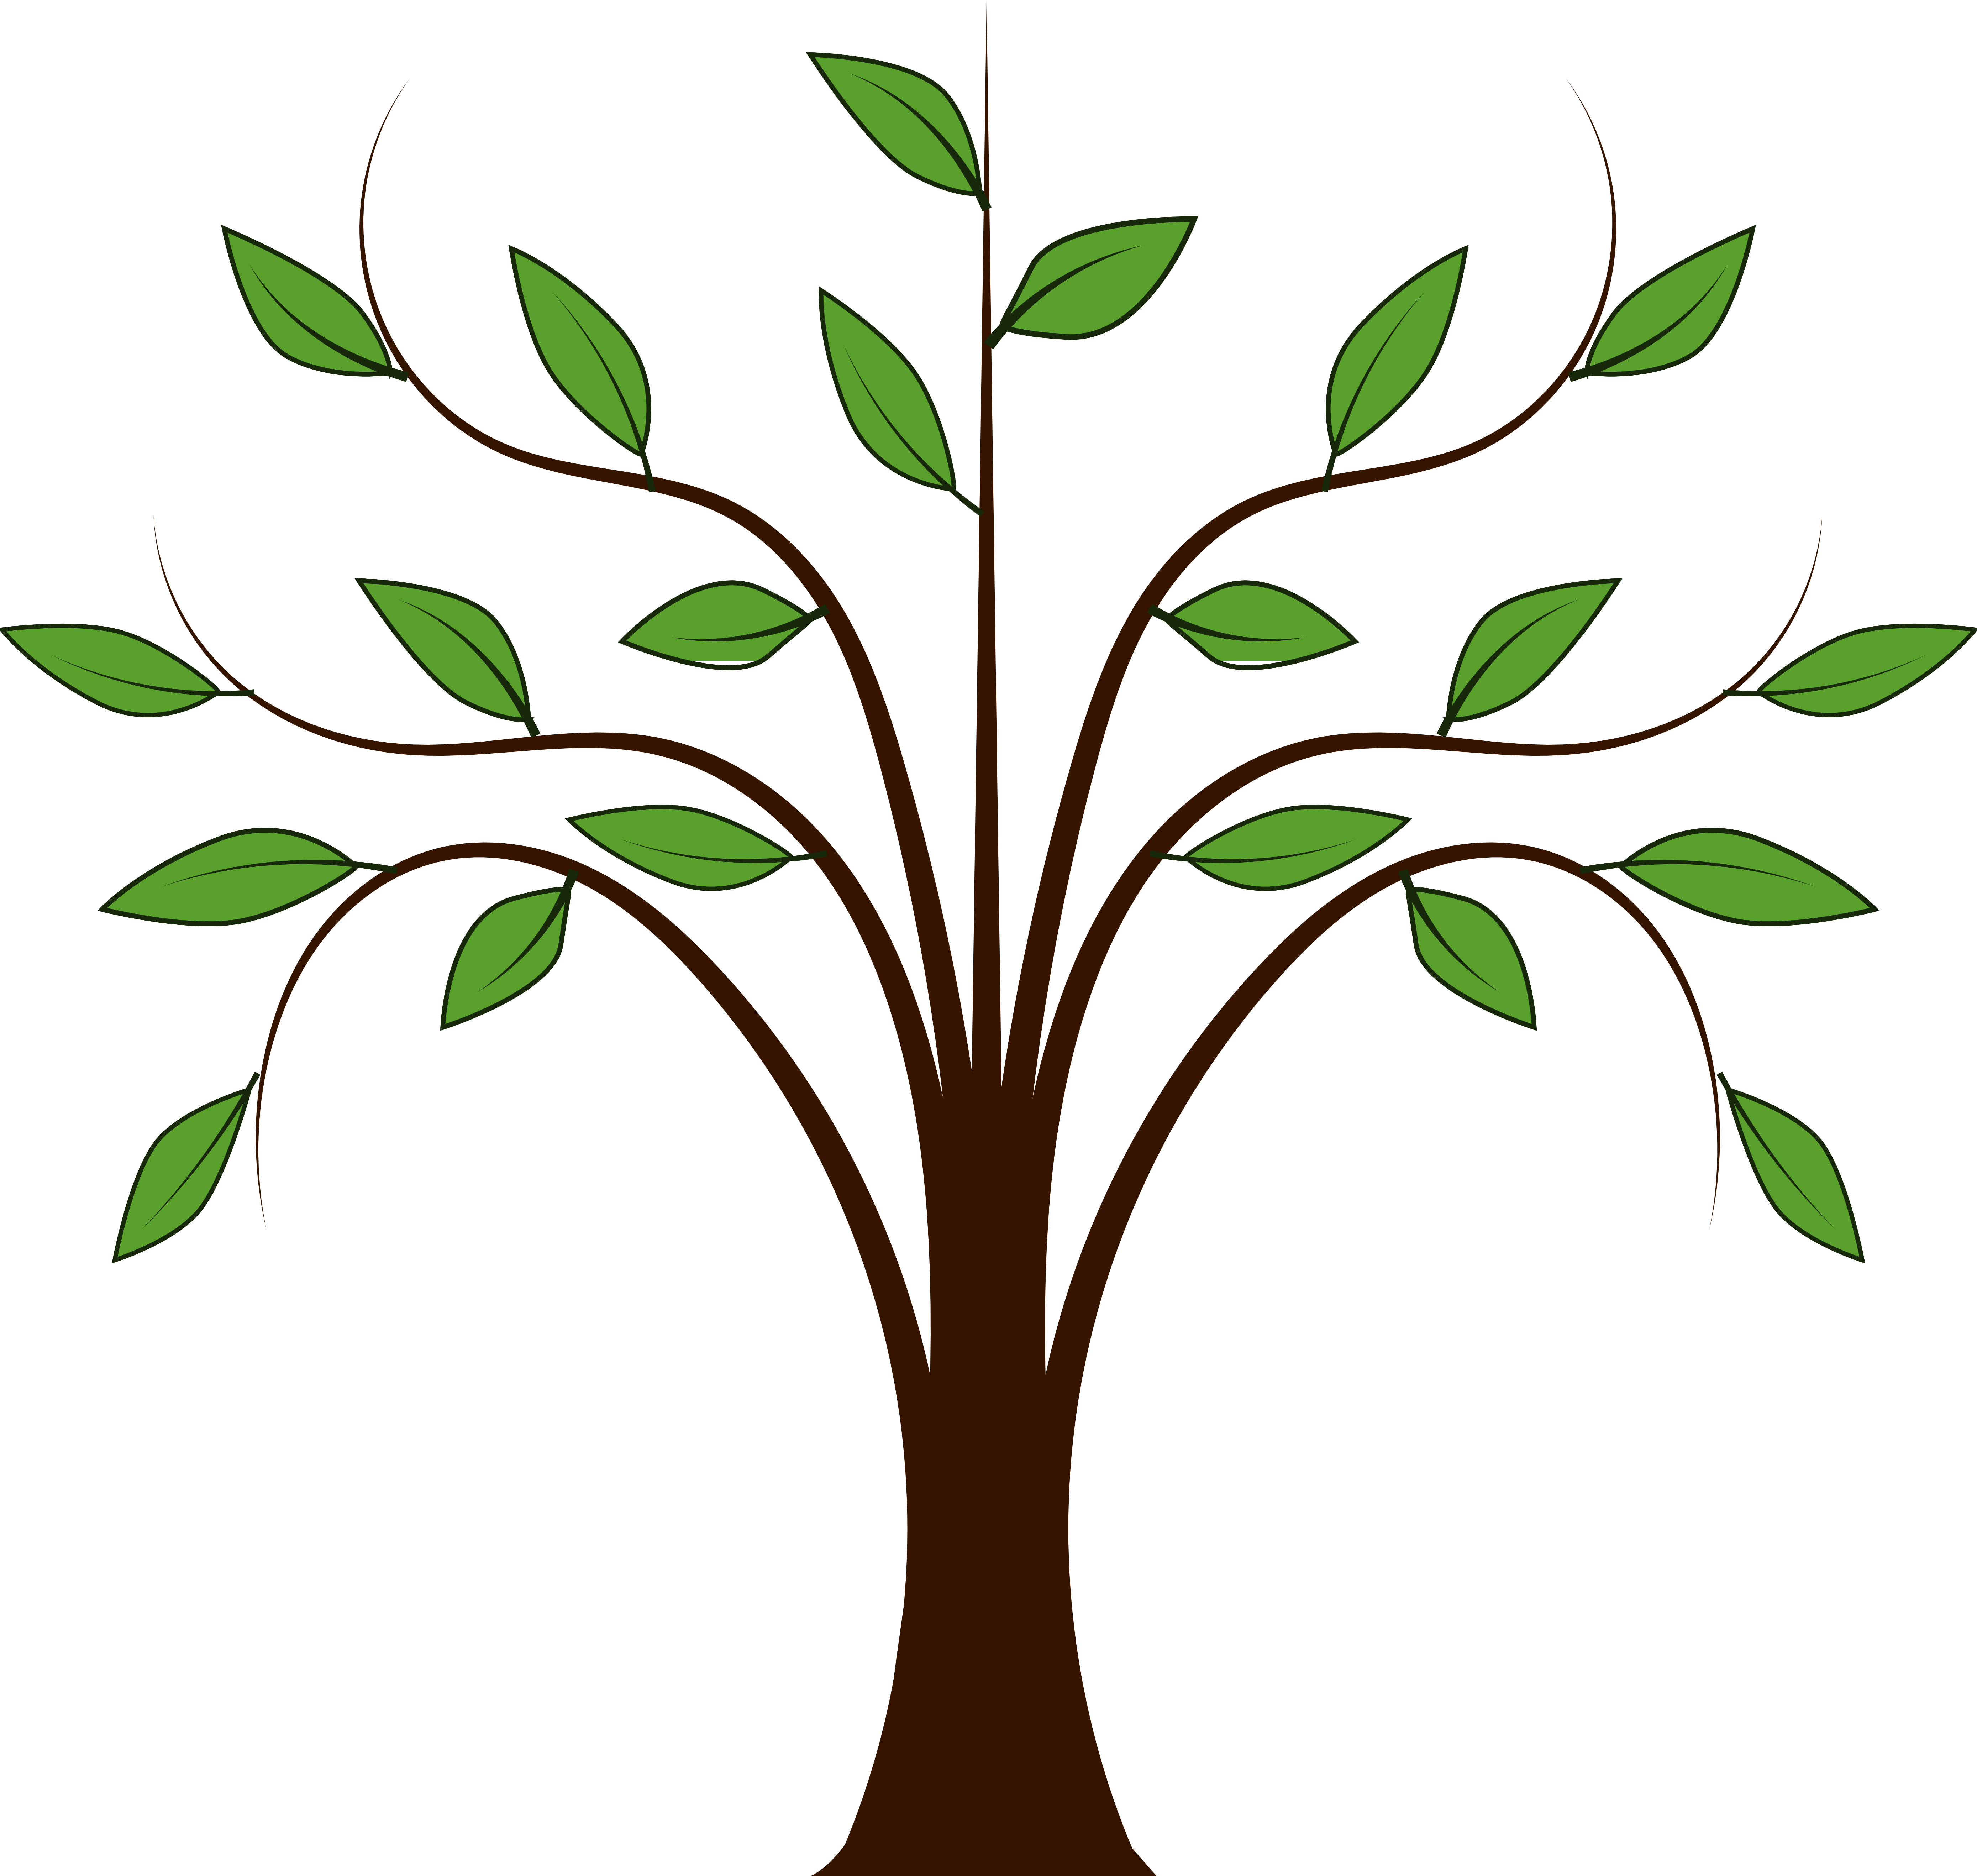 Clip Art Family Tree Outline Free Clipart Images Clipart Best Clipart Best All sizes and formats, high quality and large selection of themes for web, advertising, presentations, brochures, gifts, promotional products, or just decoration, and also. http www clipartbest com clipart pt5on8dac